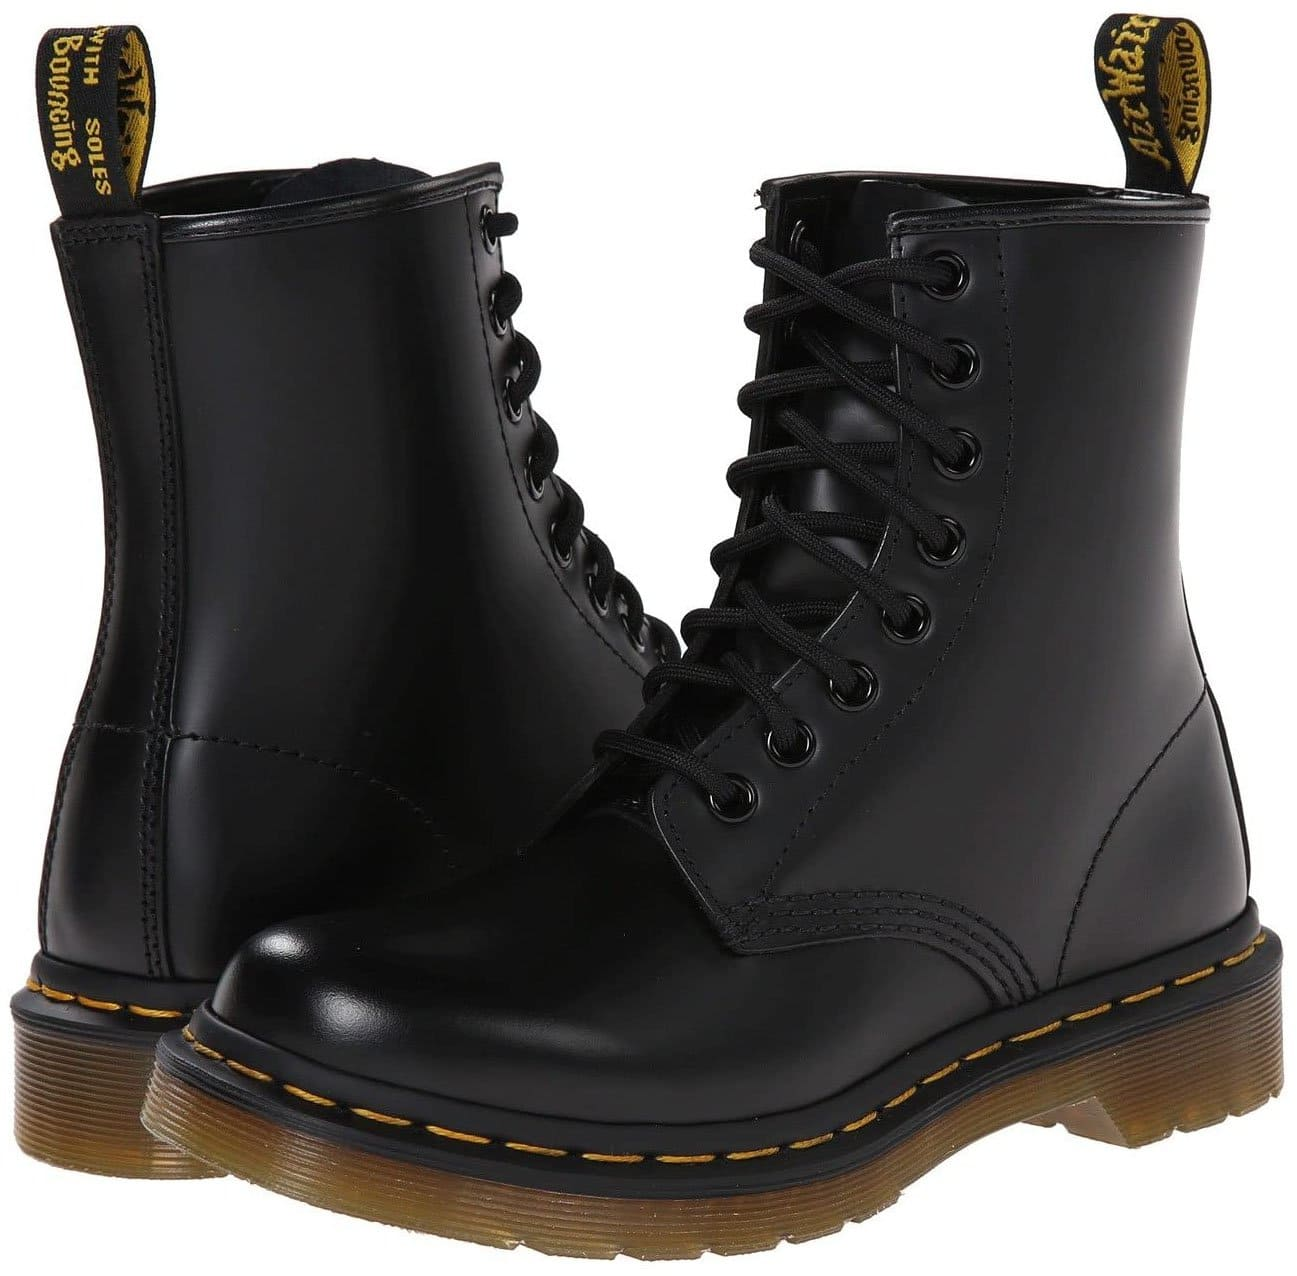 Dr. Martens 1460 is a classic favorite, featuring Docs' DNA with yellow stitching, heel loop, grooved sides, and Goodyear welt construction